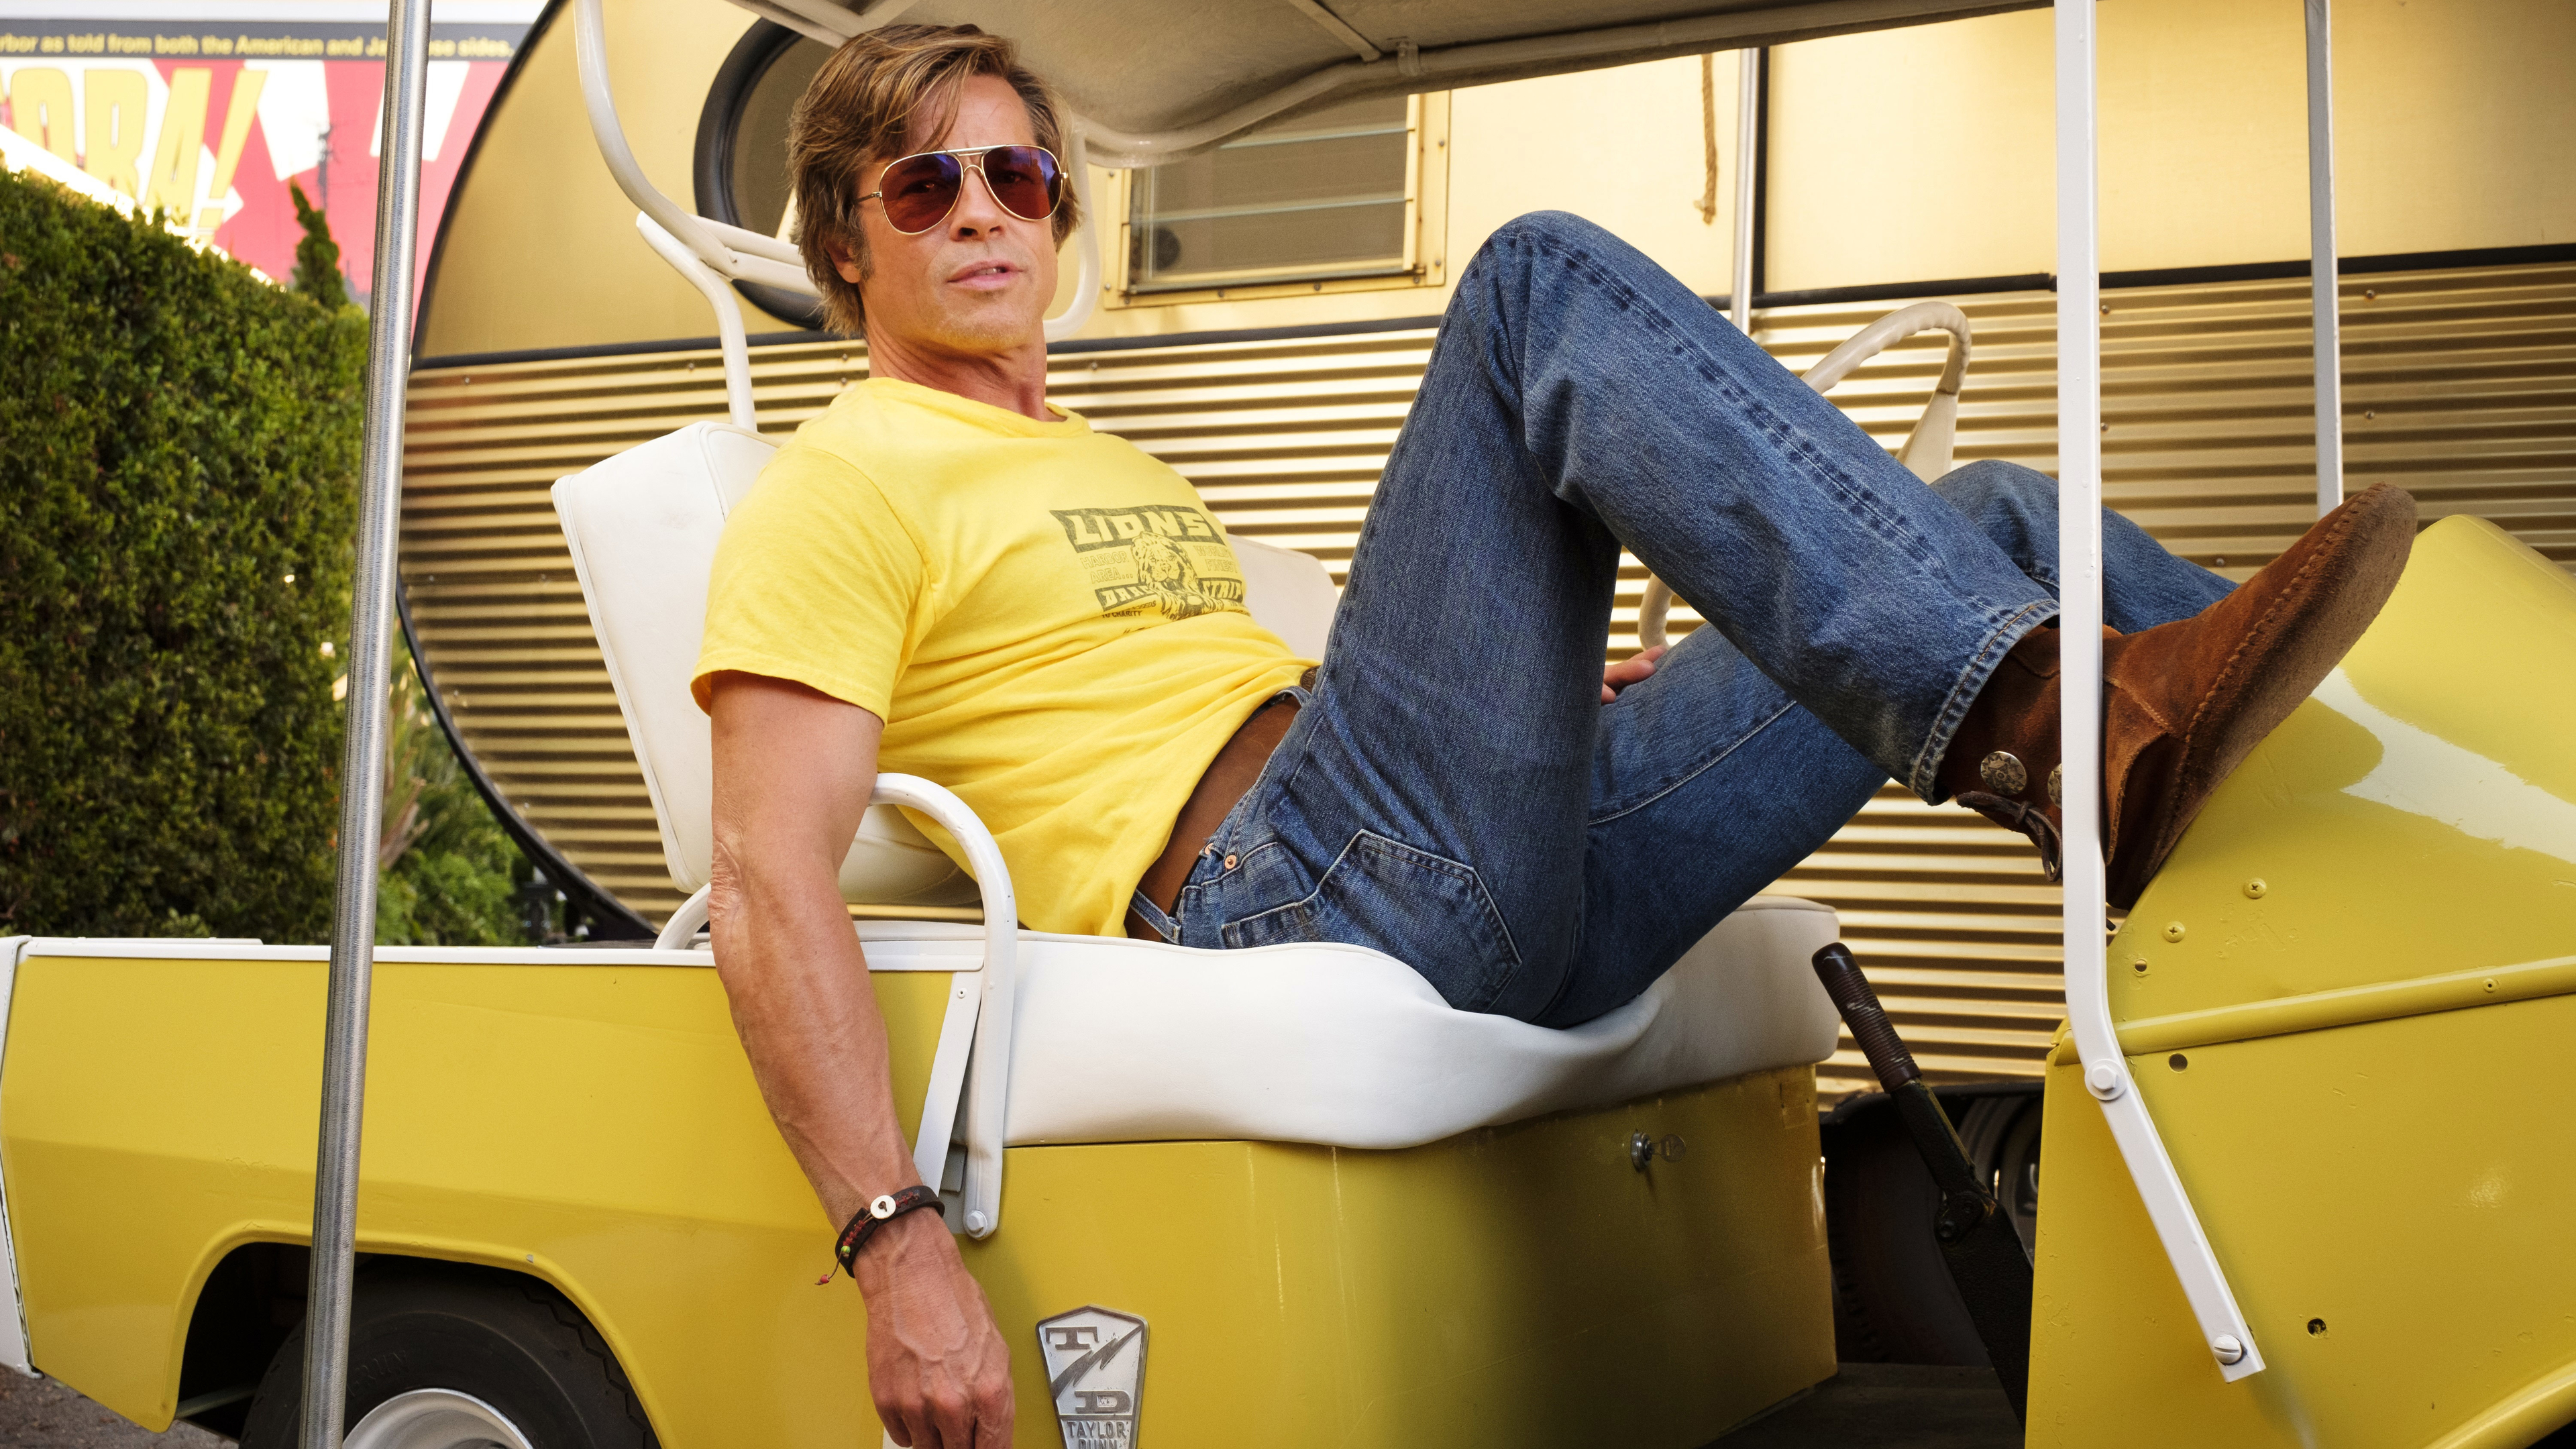 brad pitt in once upon a time in hollywood 4k 1555208577 - Brad Pitt In Once Upon A Time In Hollywood 4k - once upon a time in hollywood wallpapers, movies wallpapers, hd-wallpapers, brad pitt wallpapers, 4k-wallpapers, 2019 movies wallpapers